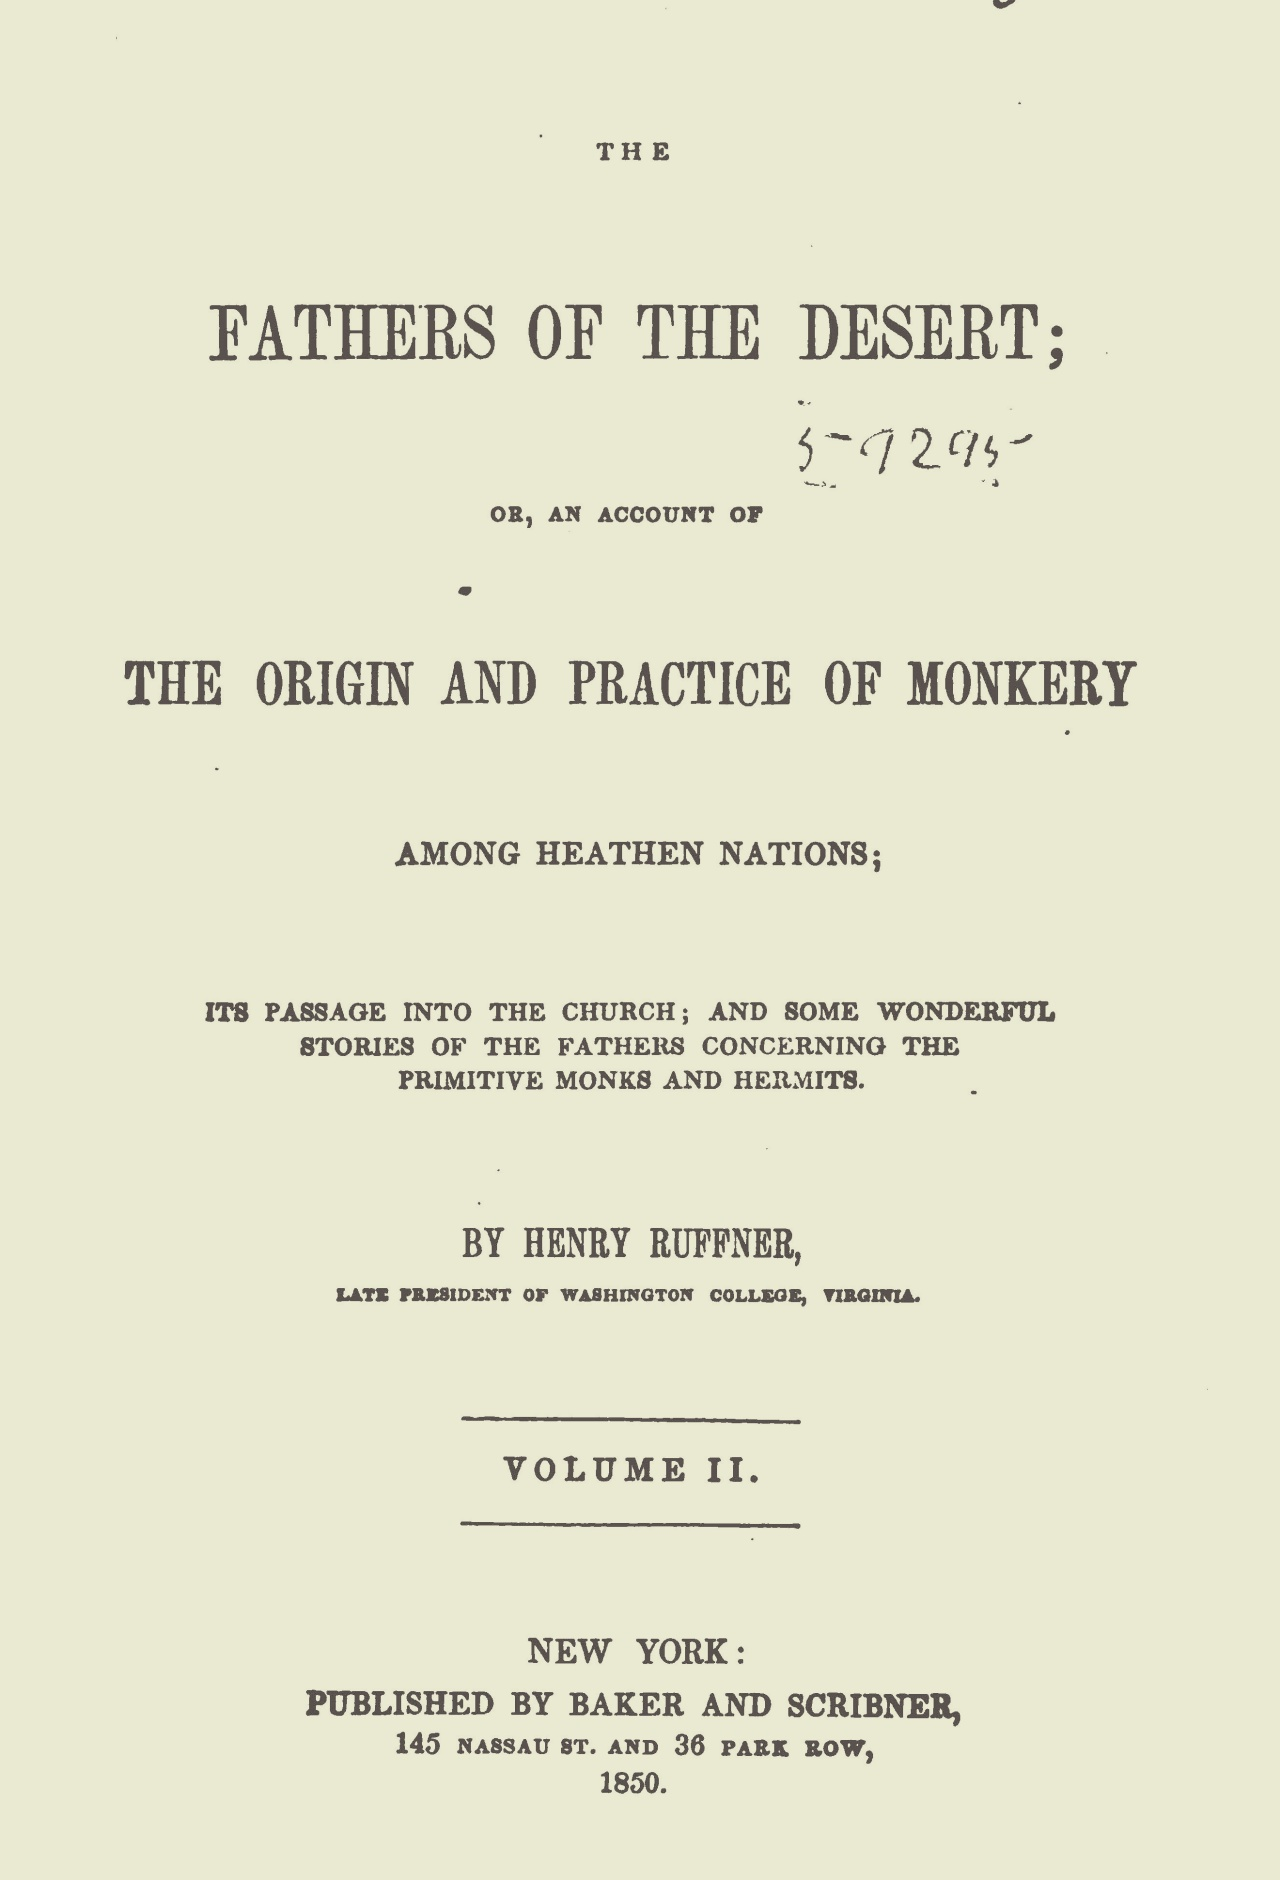 Ruffner, Henry, The Fathers of the Desert, Vol. 2 Title Page.jpg